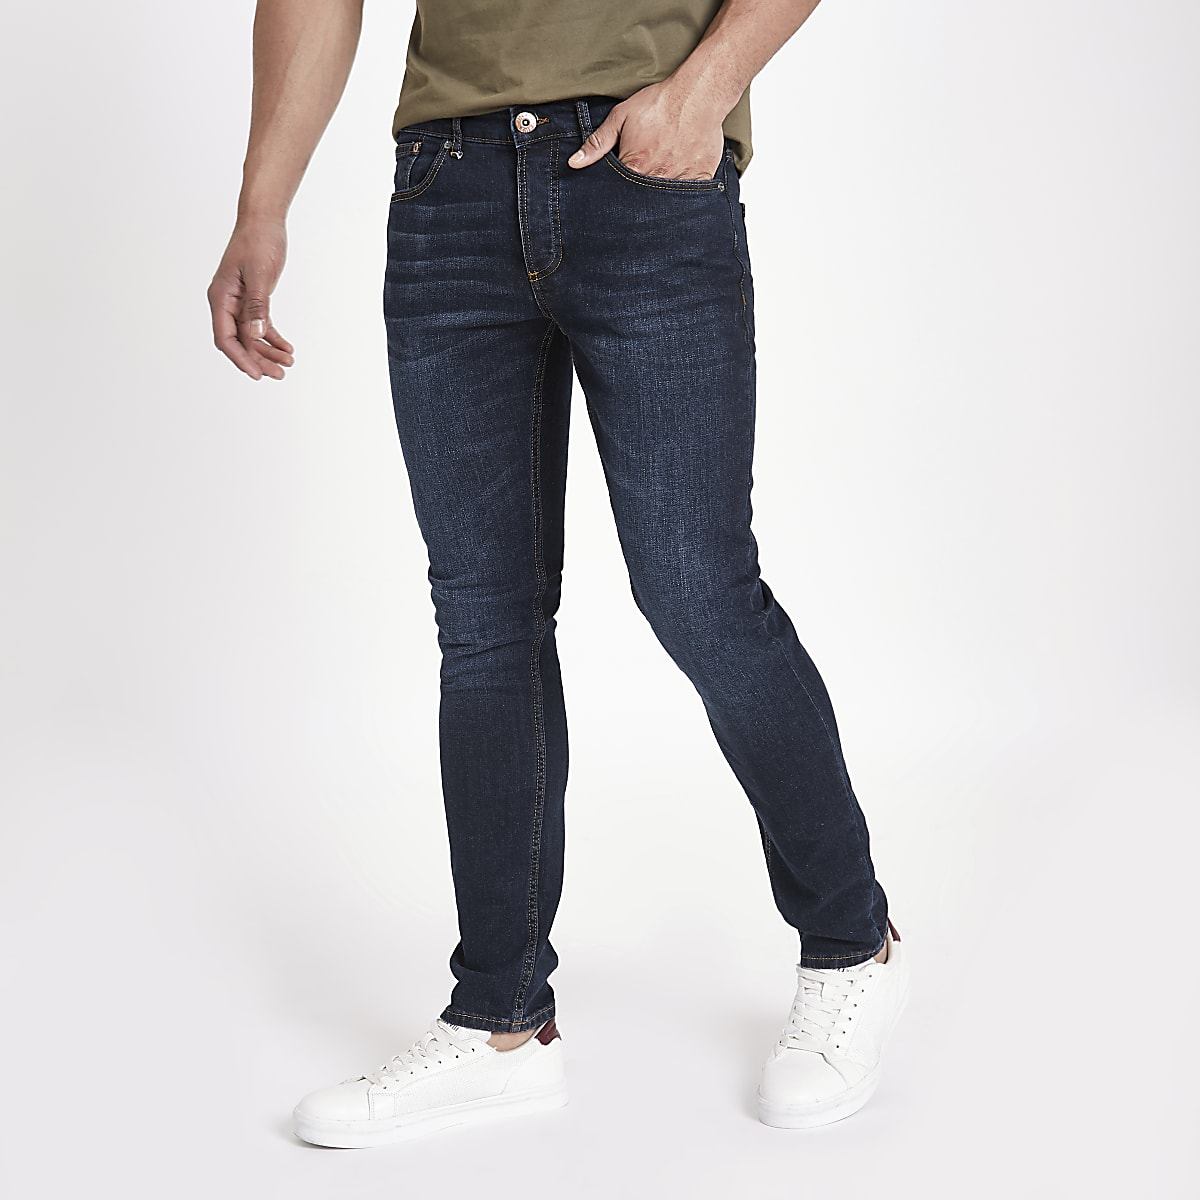 3585cac4d2 Dark blue fade Sid skinny jeans - Skinny Jeans - Jeans - men